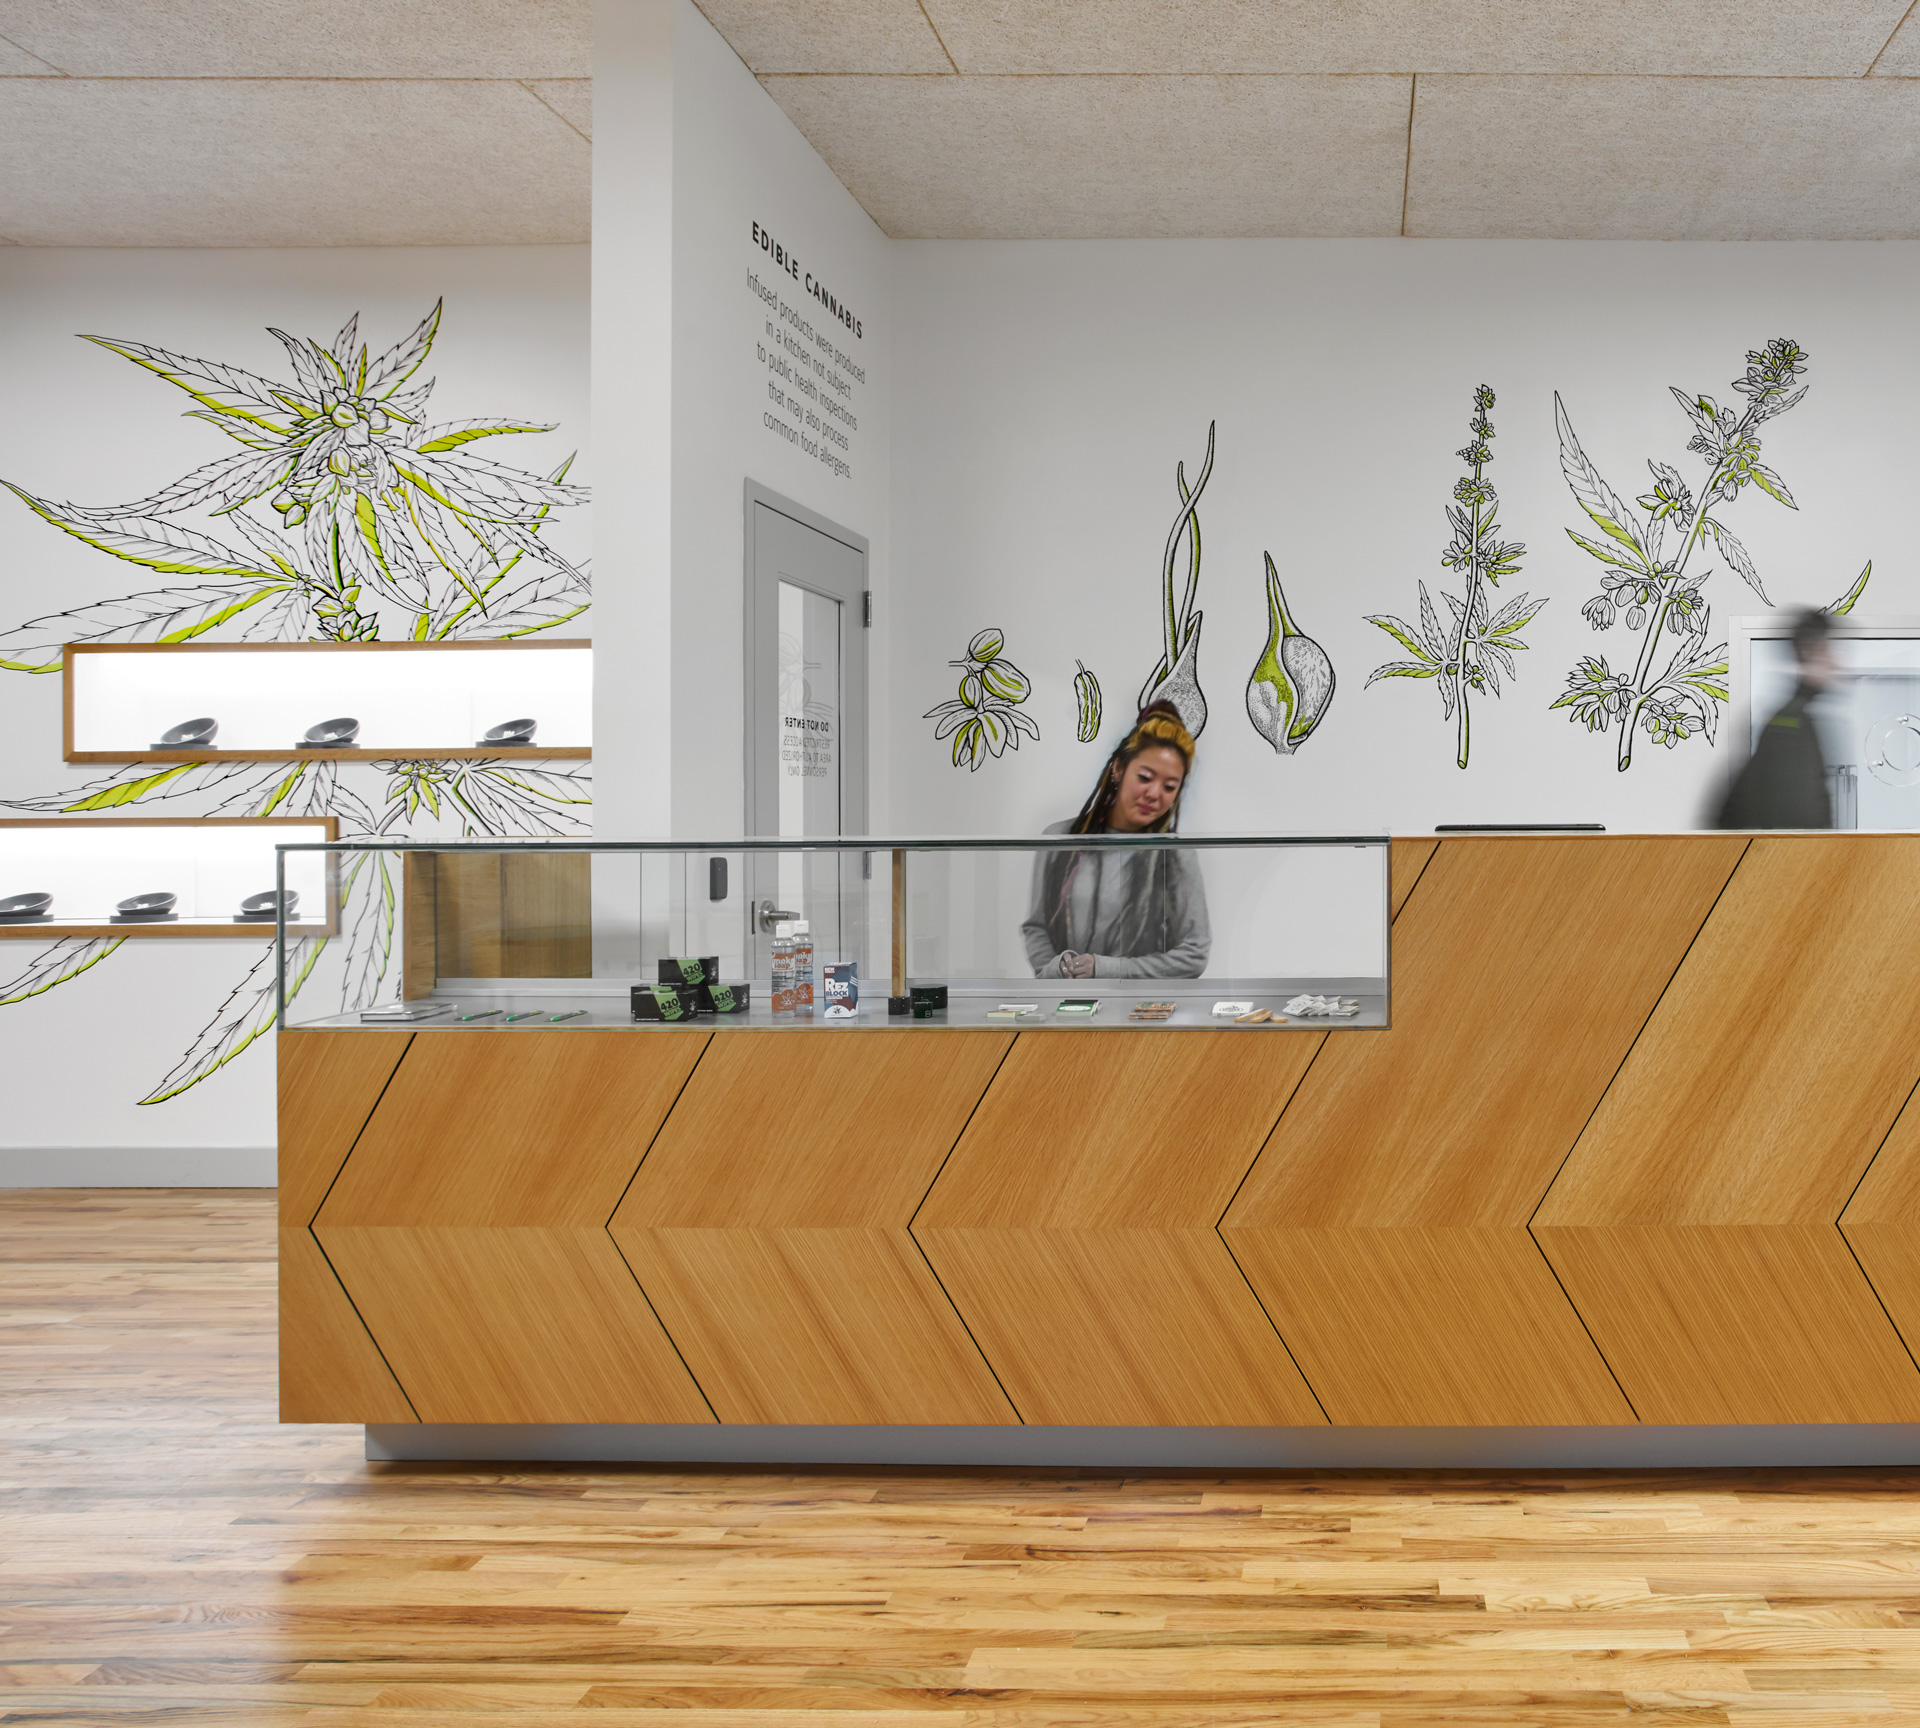 make-dispensary-33-mural-design-11